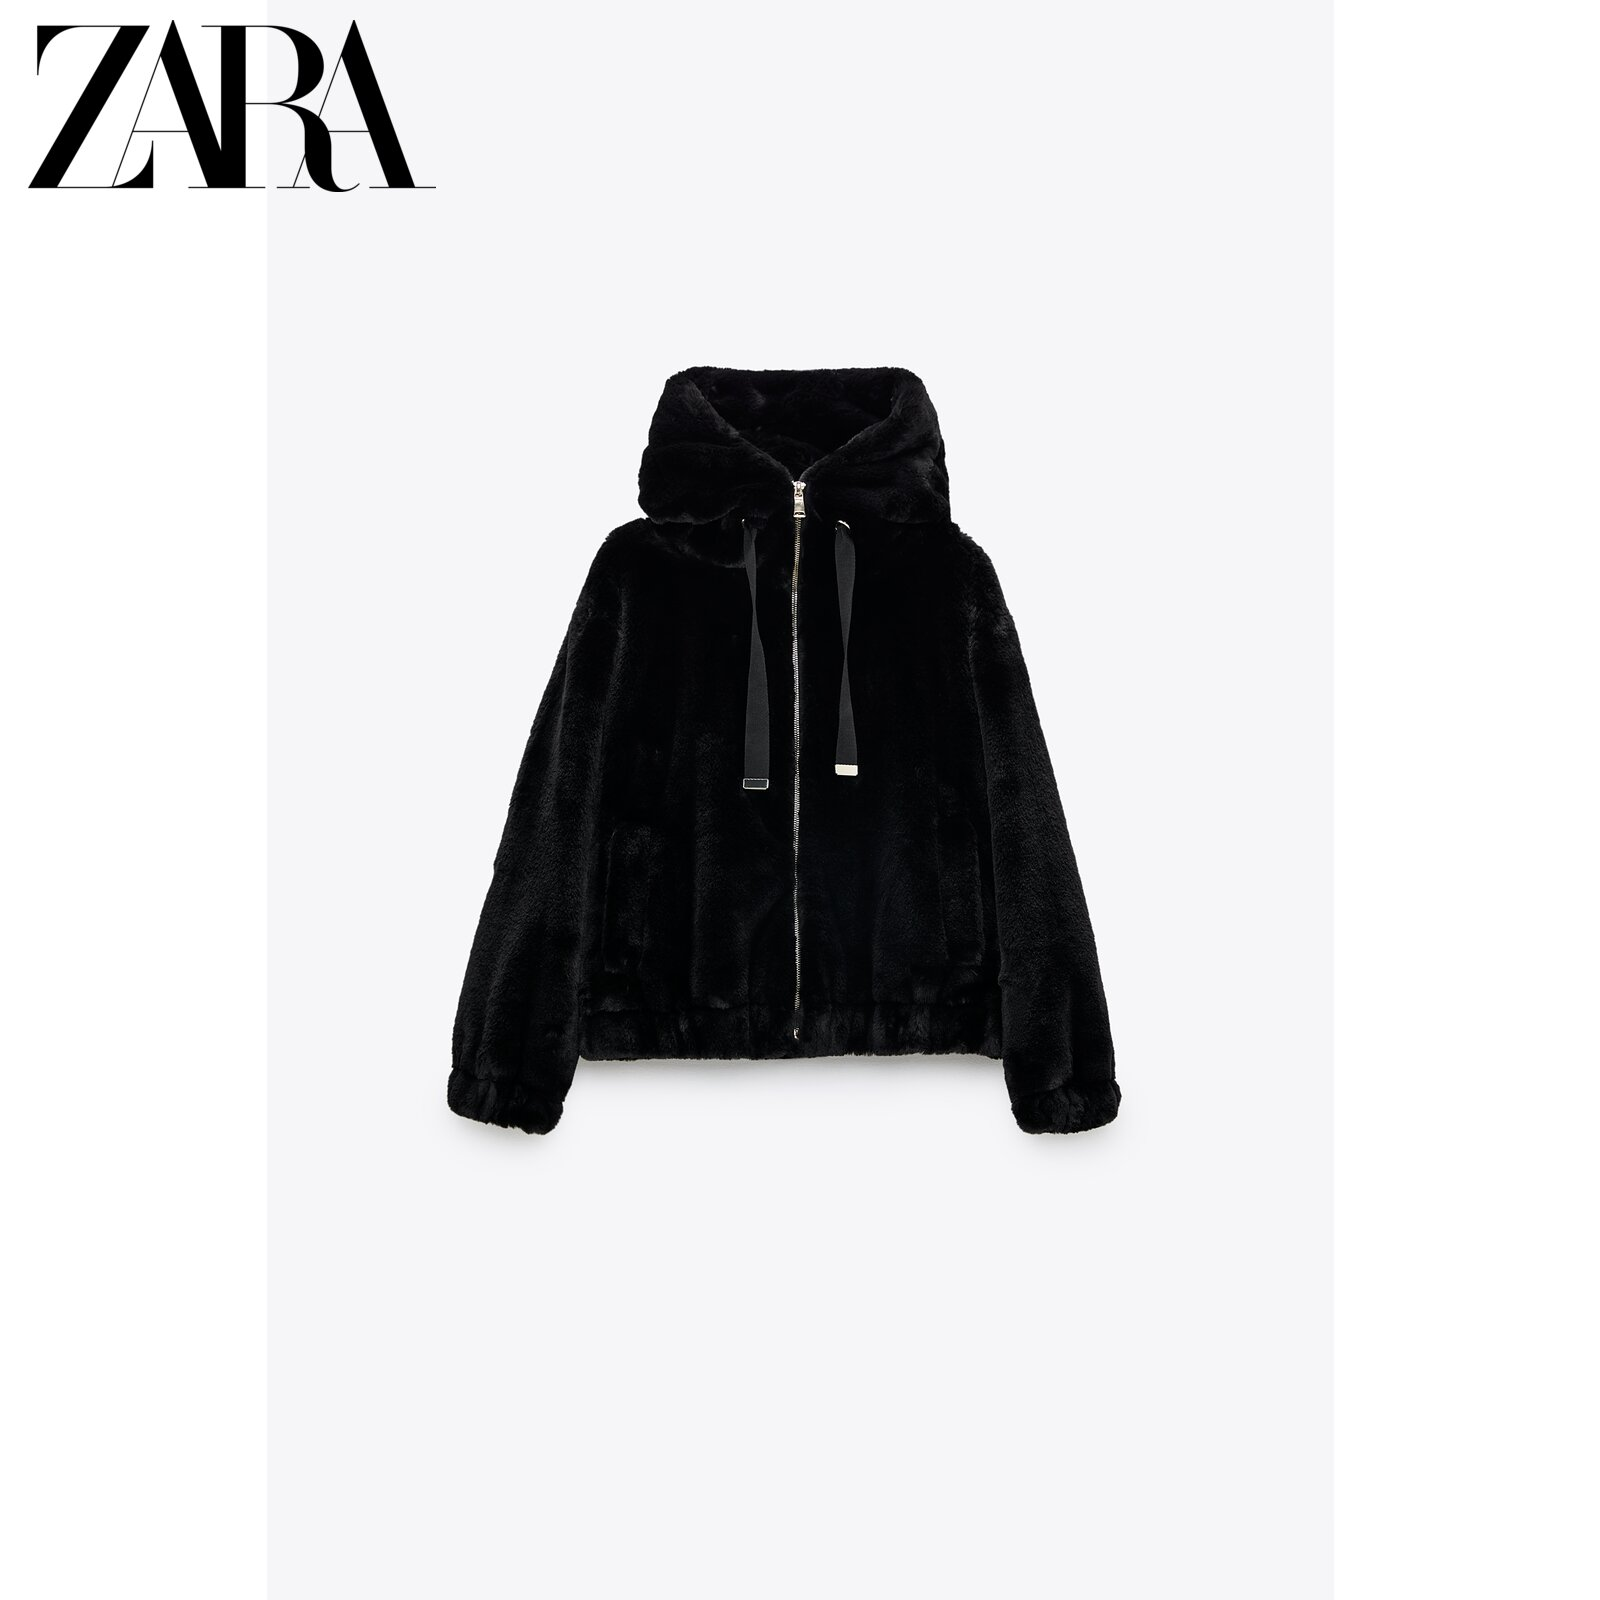 Zara new women's faux fur effect hooded jacket 06318227800